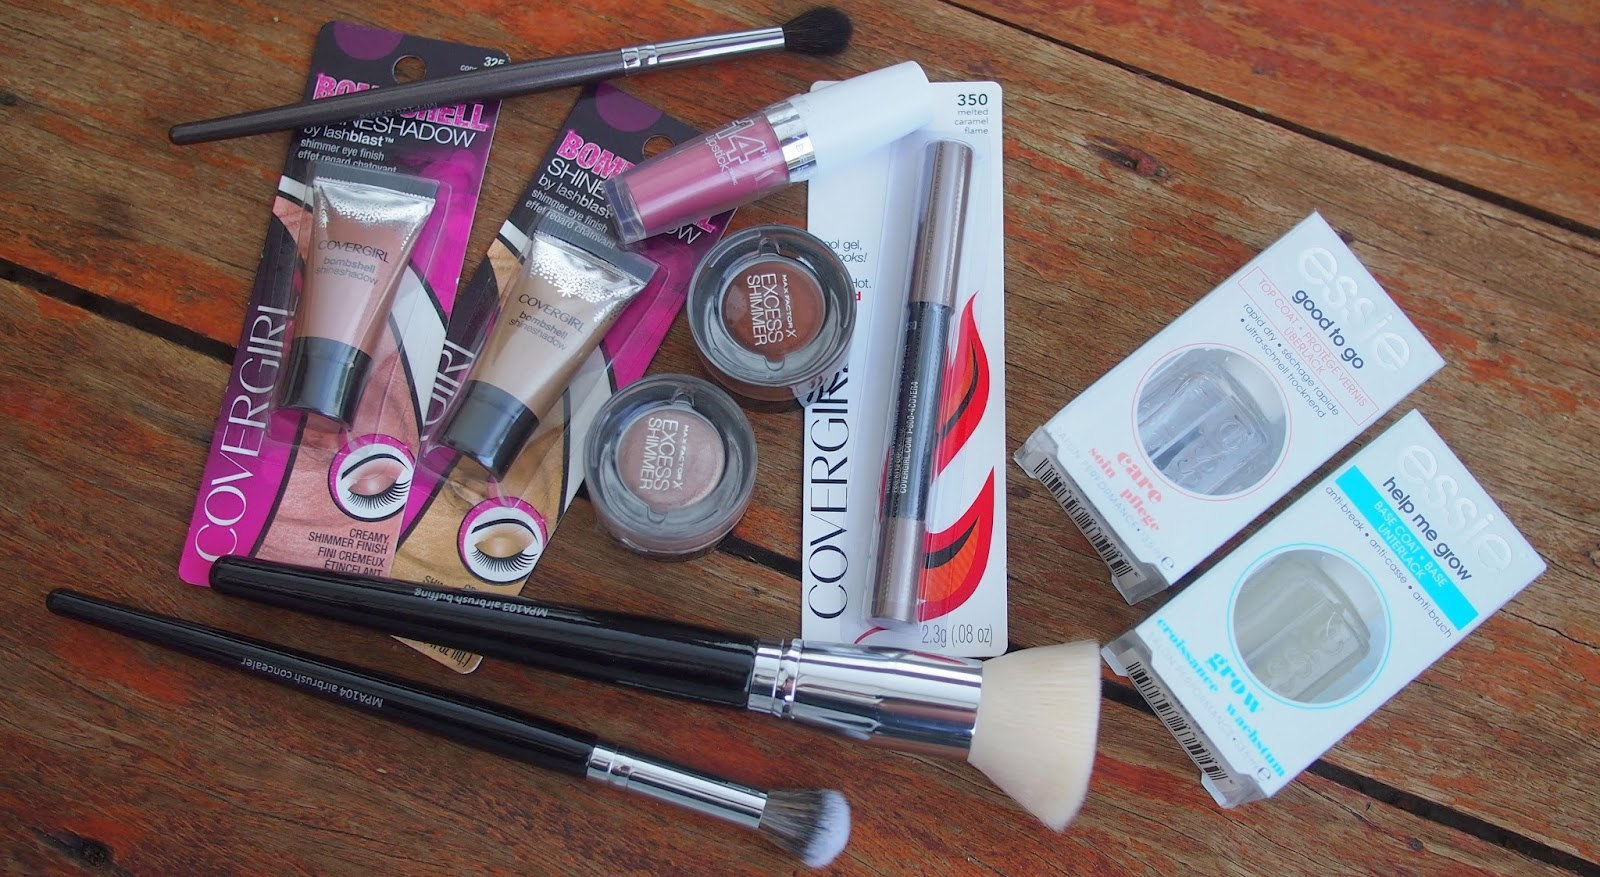 a36788c7207 Born to Buy: That Escalated Quickly   PRICELINE 40% OFF COSMETICS HAUL